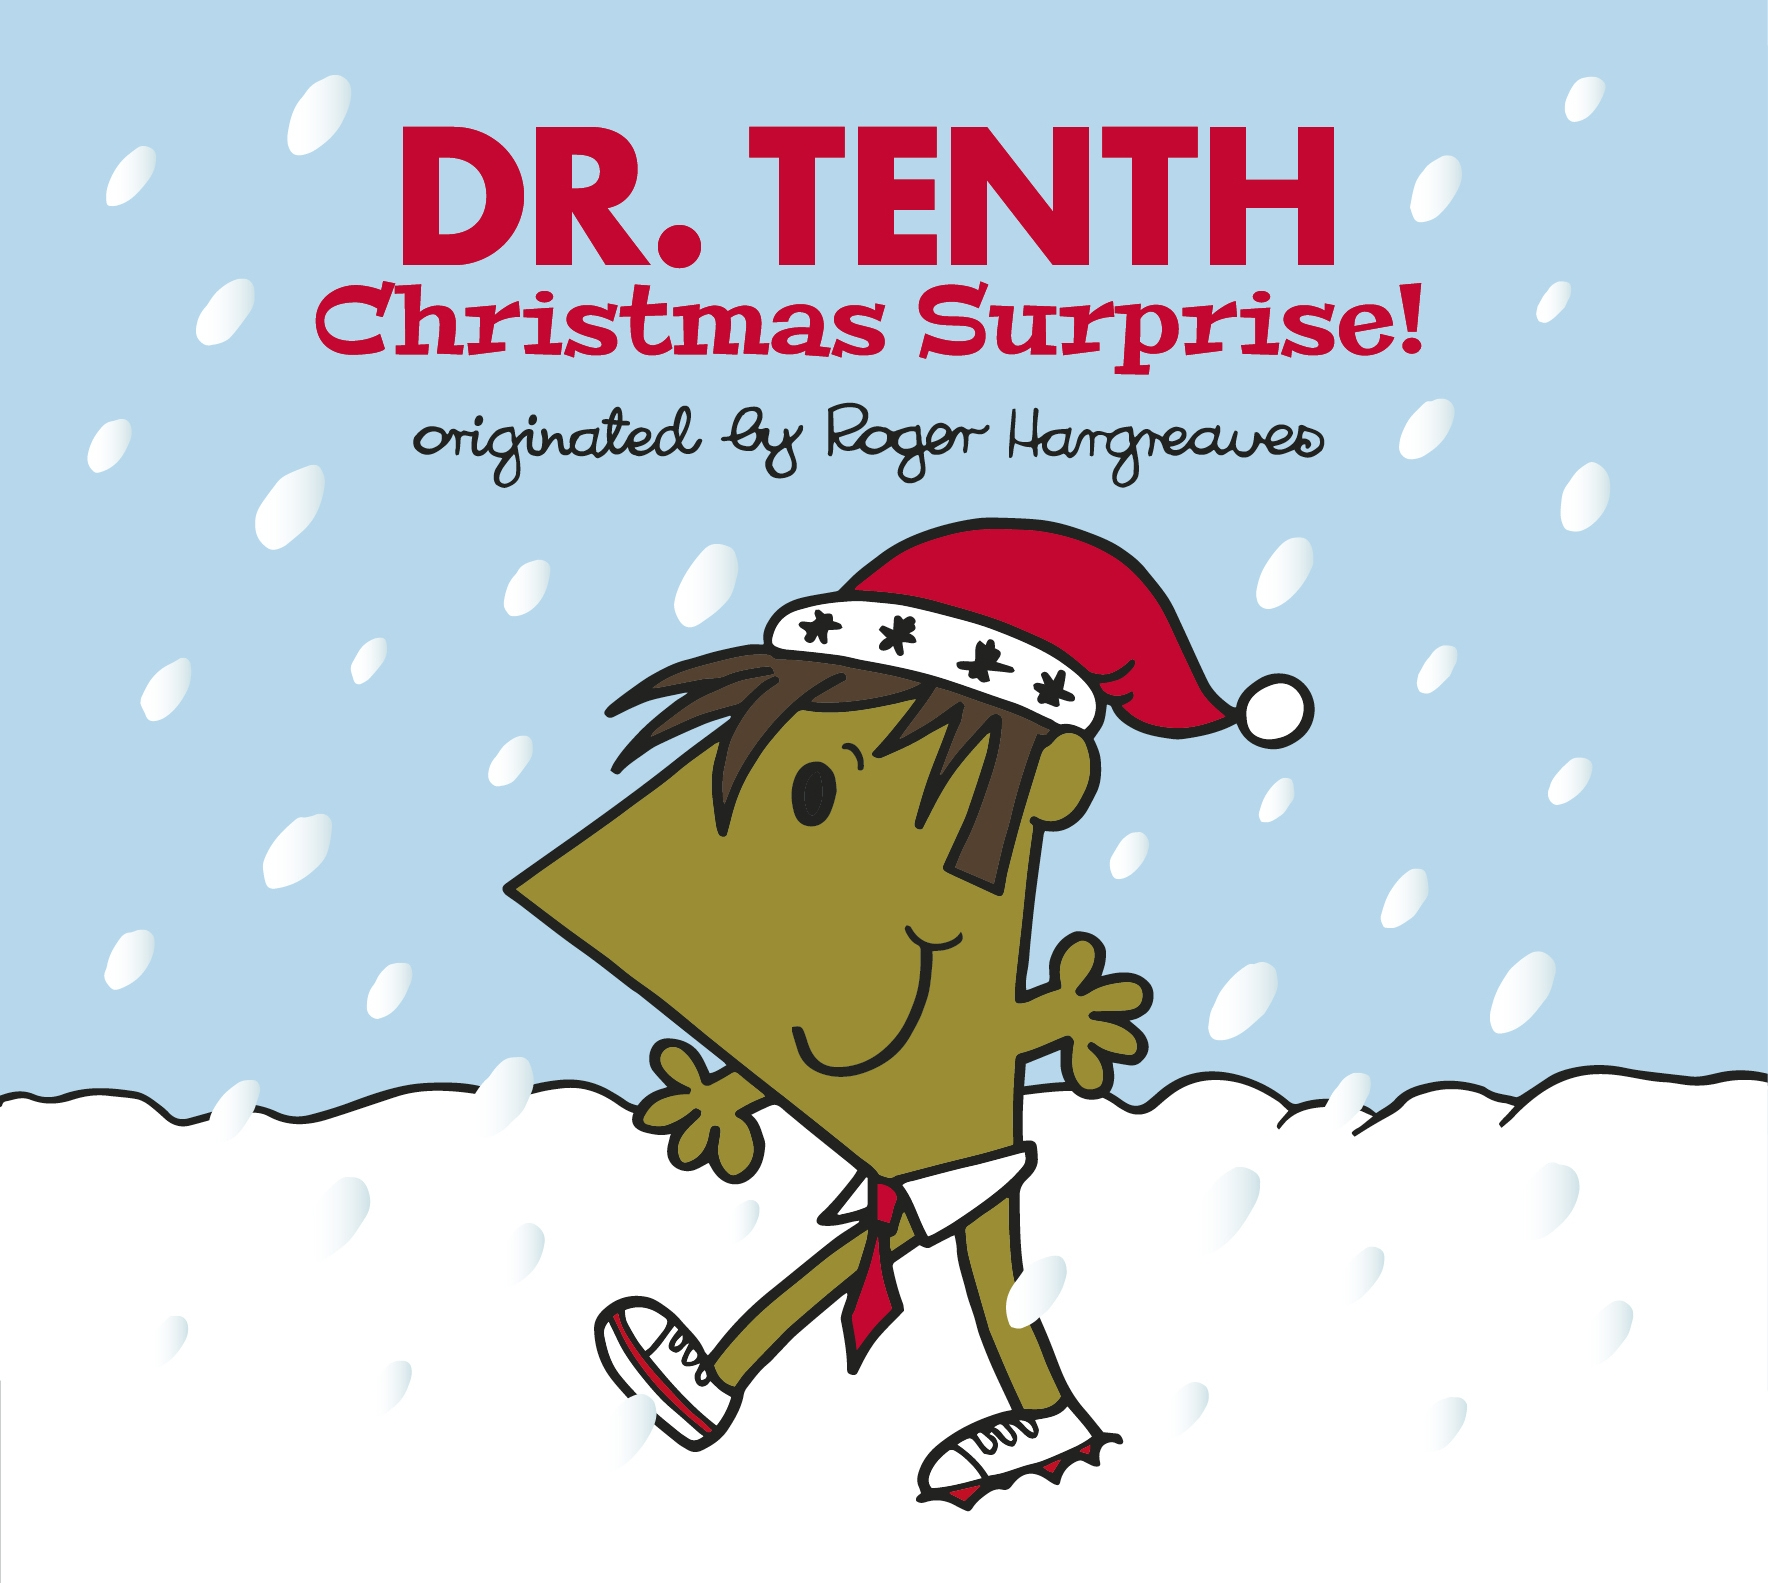 Dr. Tenth: Christmas Surprise! (Credit: Penguin Random House UK)